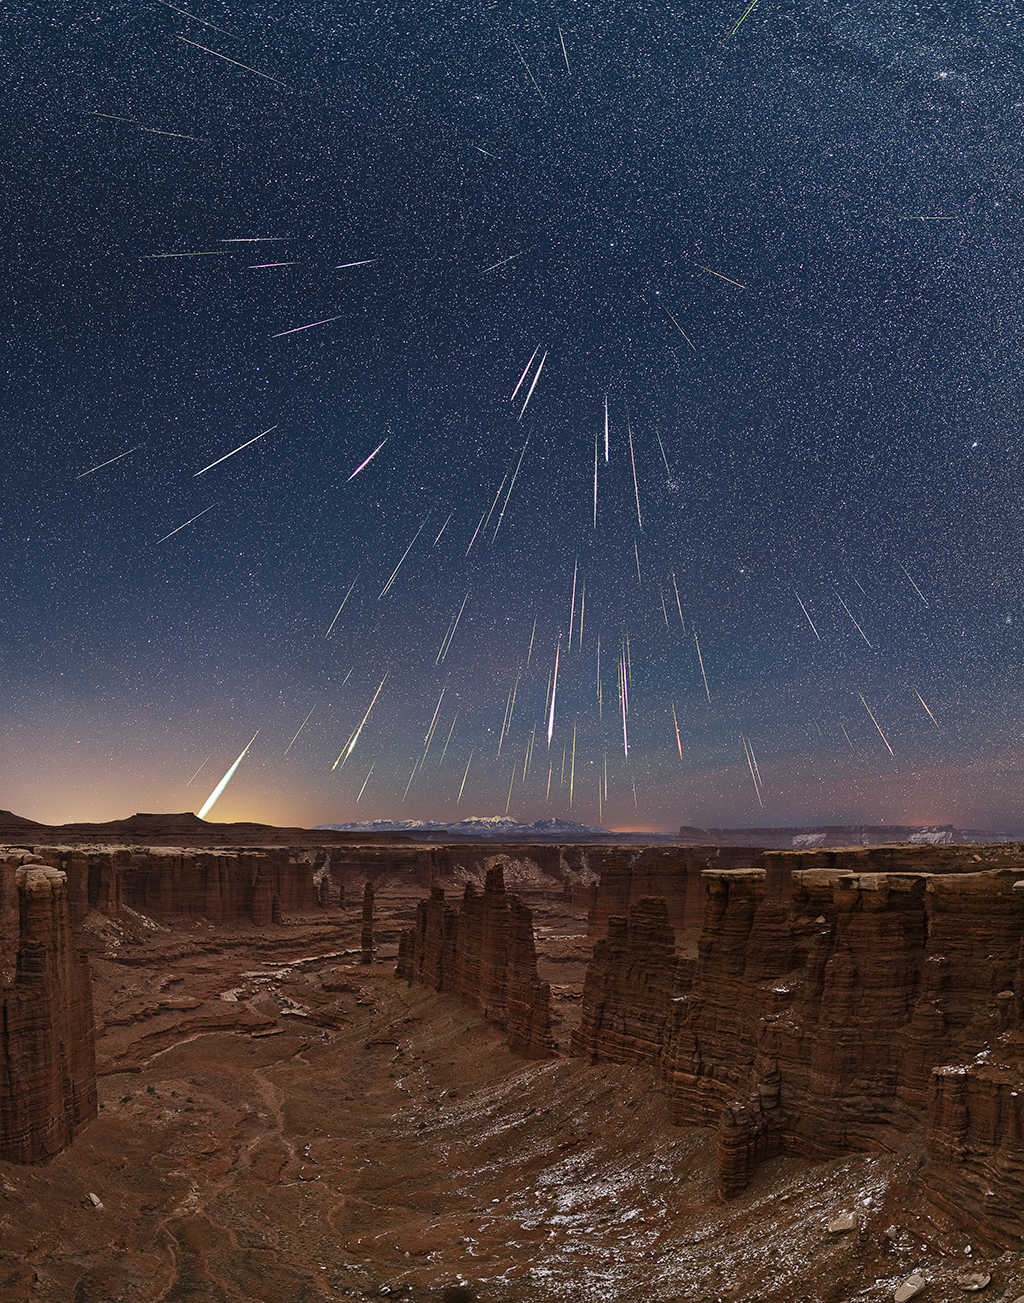 night landscape photography of a meteor shower